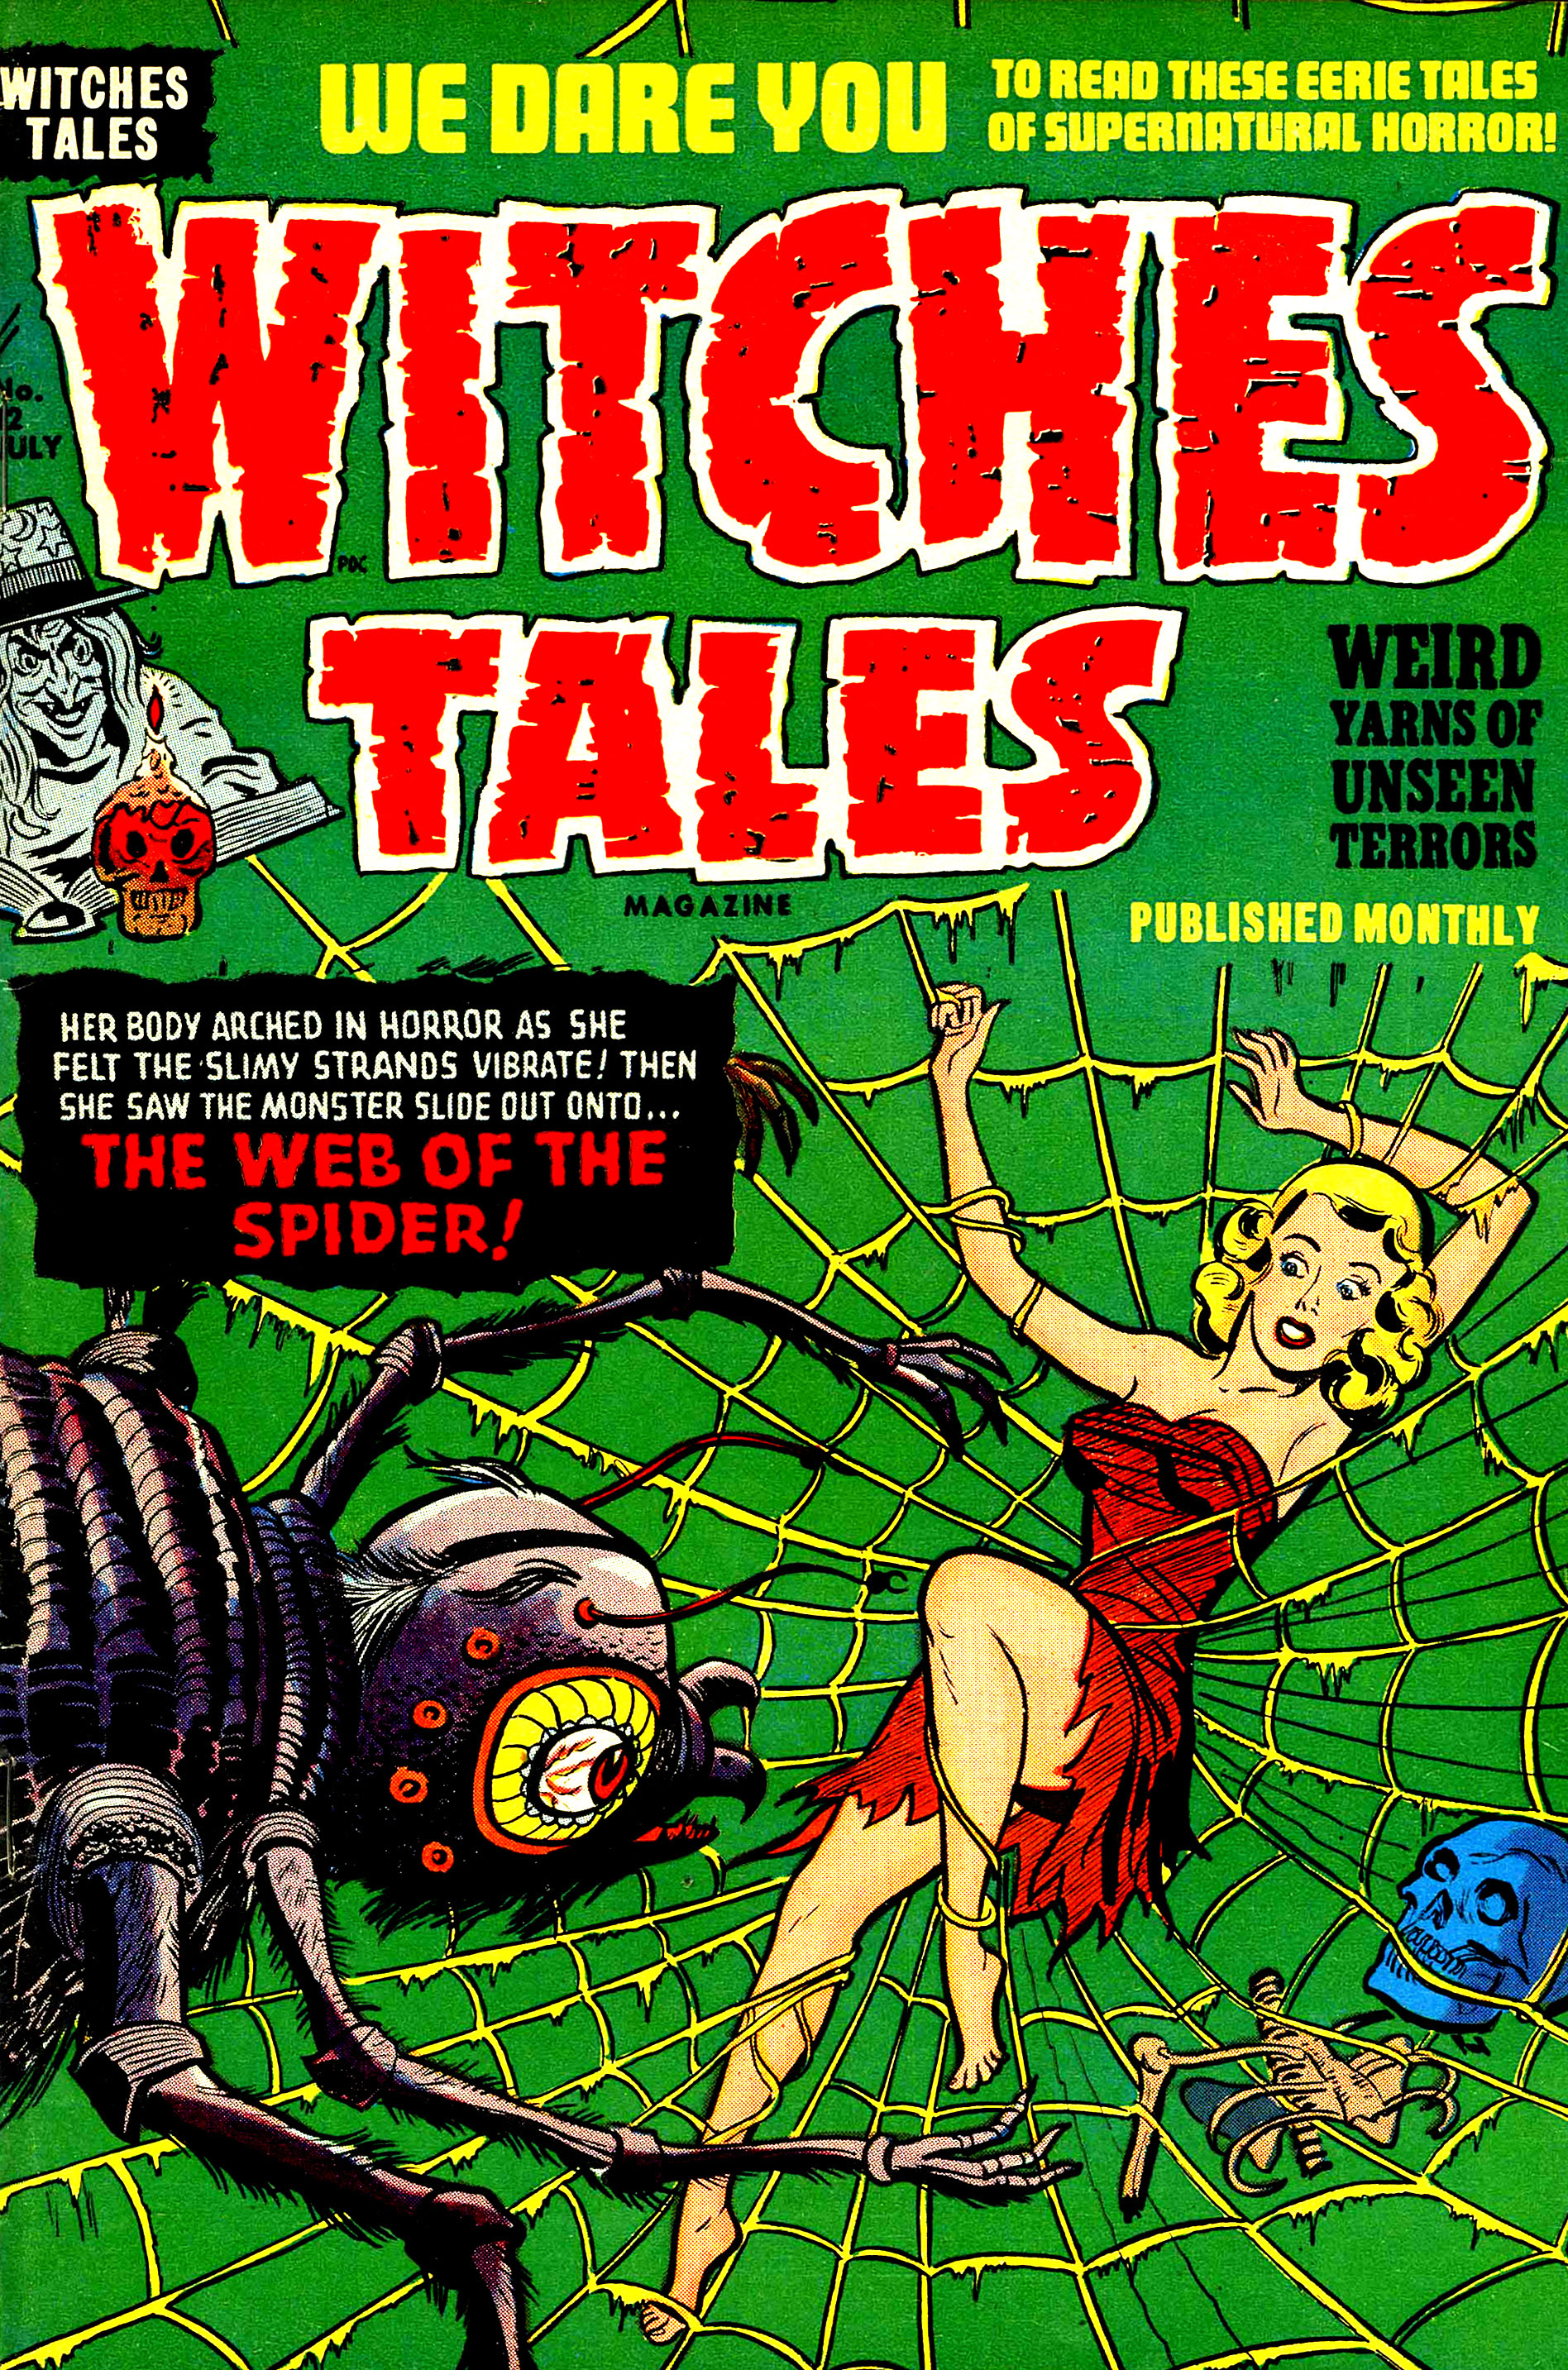 Witches Tales #12, Al Avison Cover (Harvey, 1952)